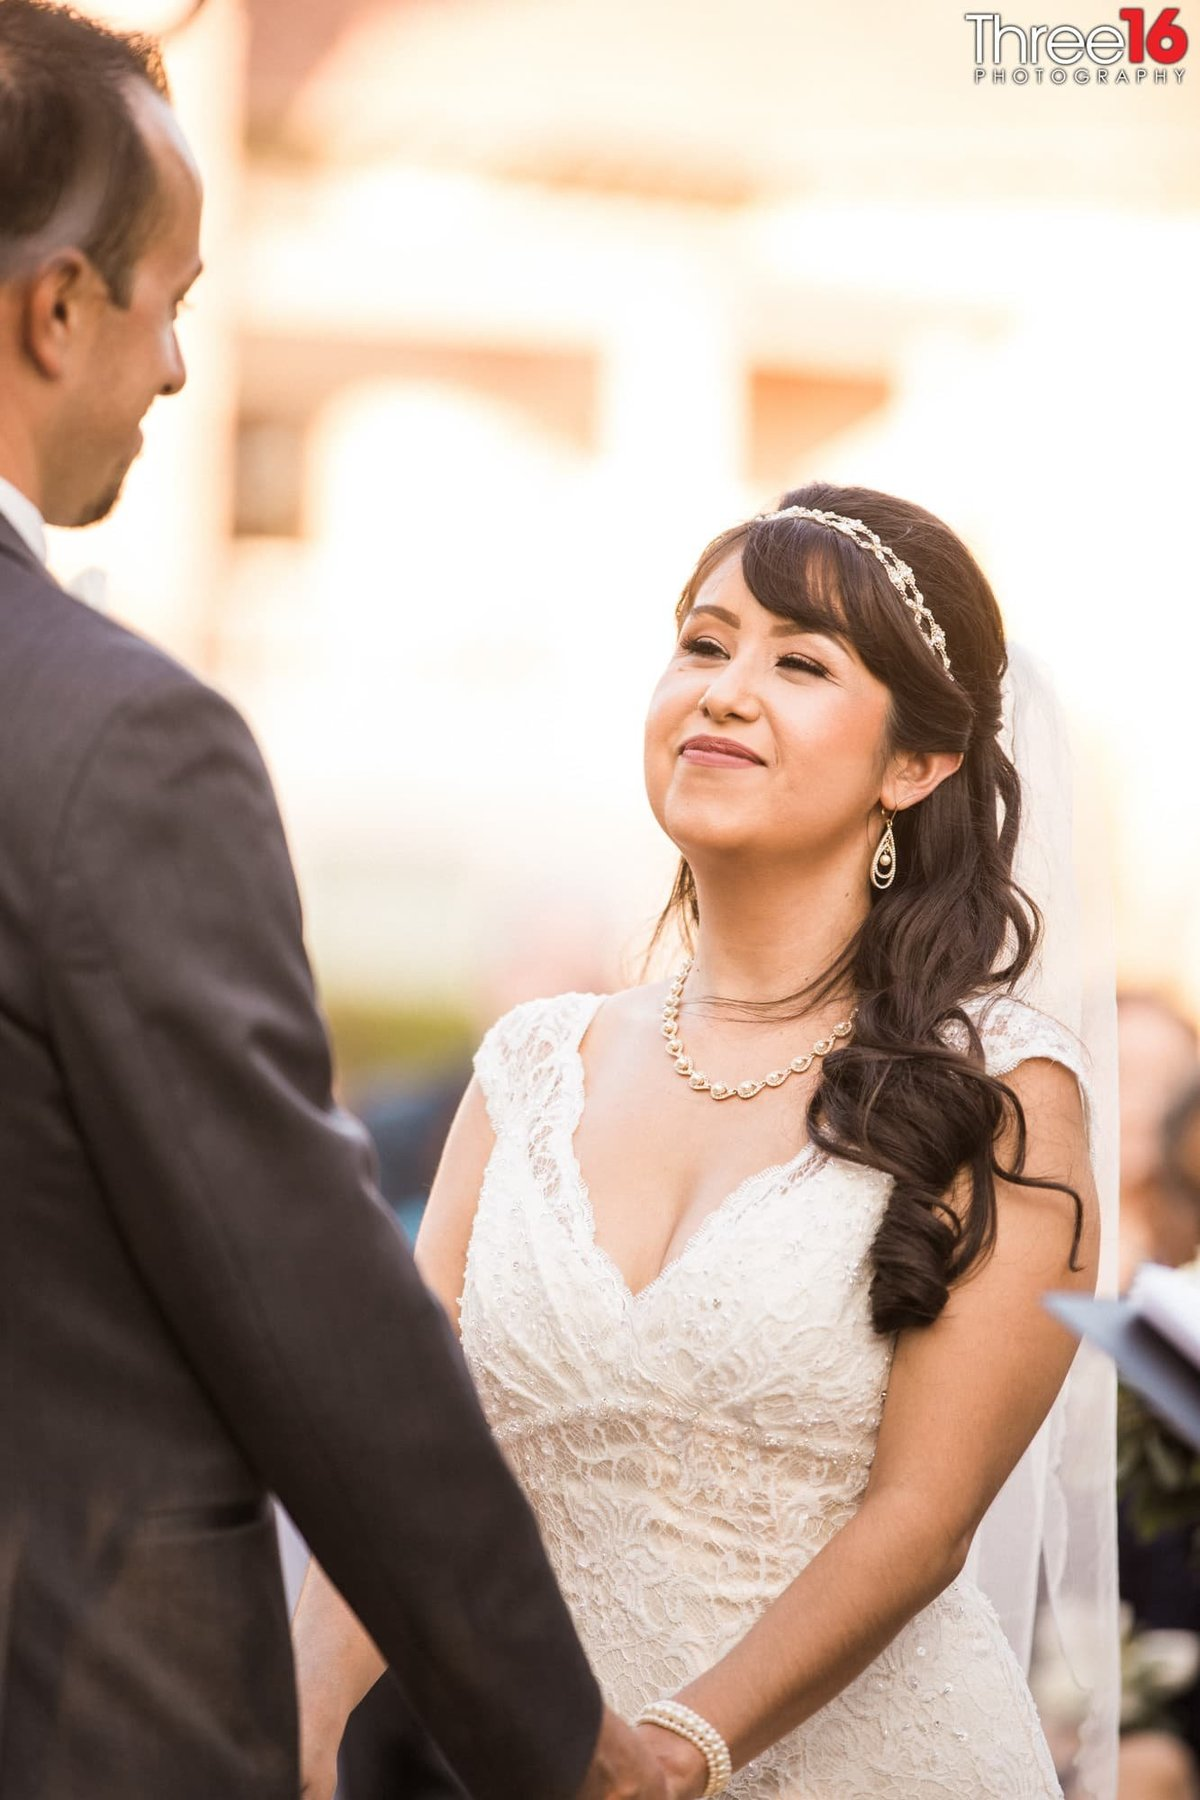 Bride looking at her Groom while taking their vows